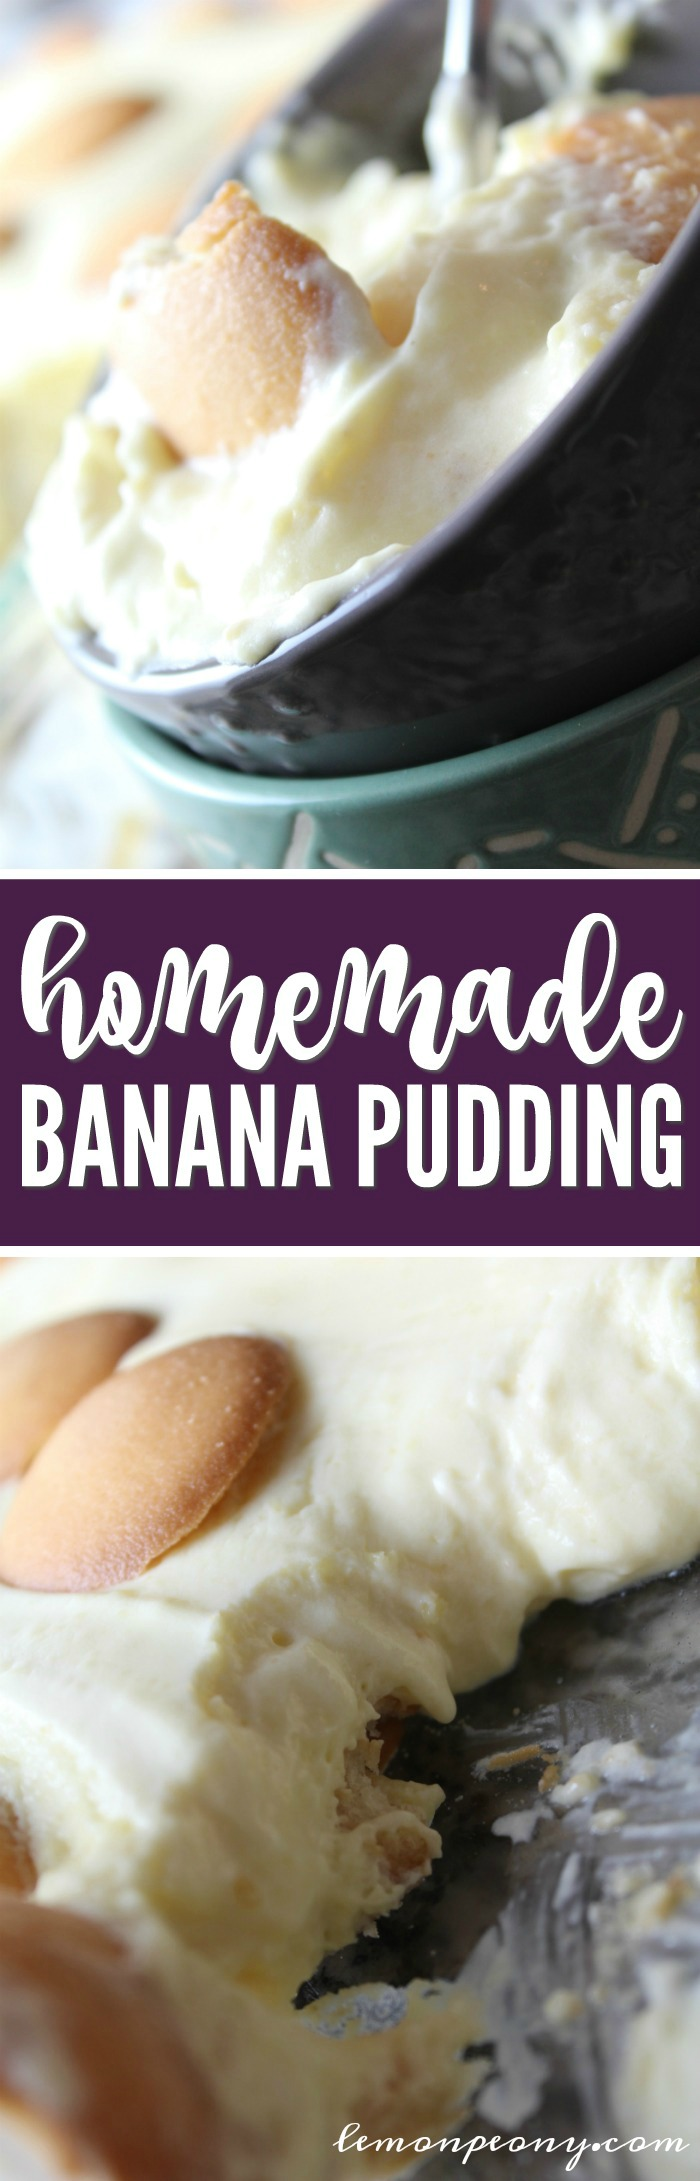 Homemade Banana Pudding Recipe! Easy Dessert Recipe for Parties & Game Day!